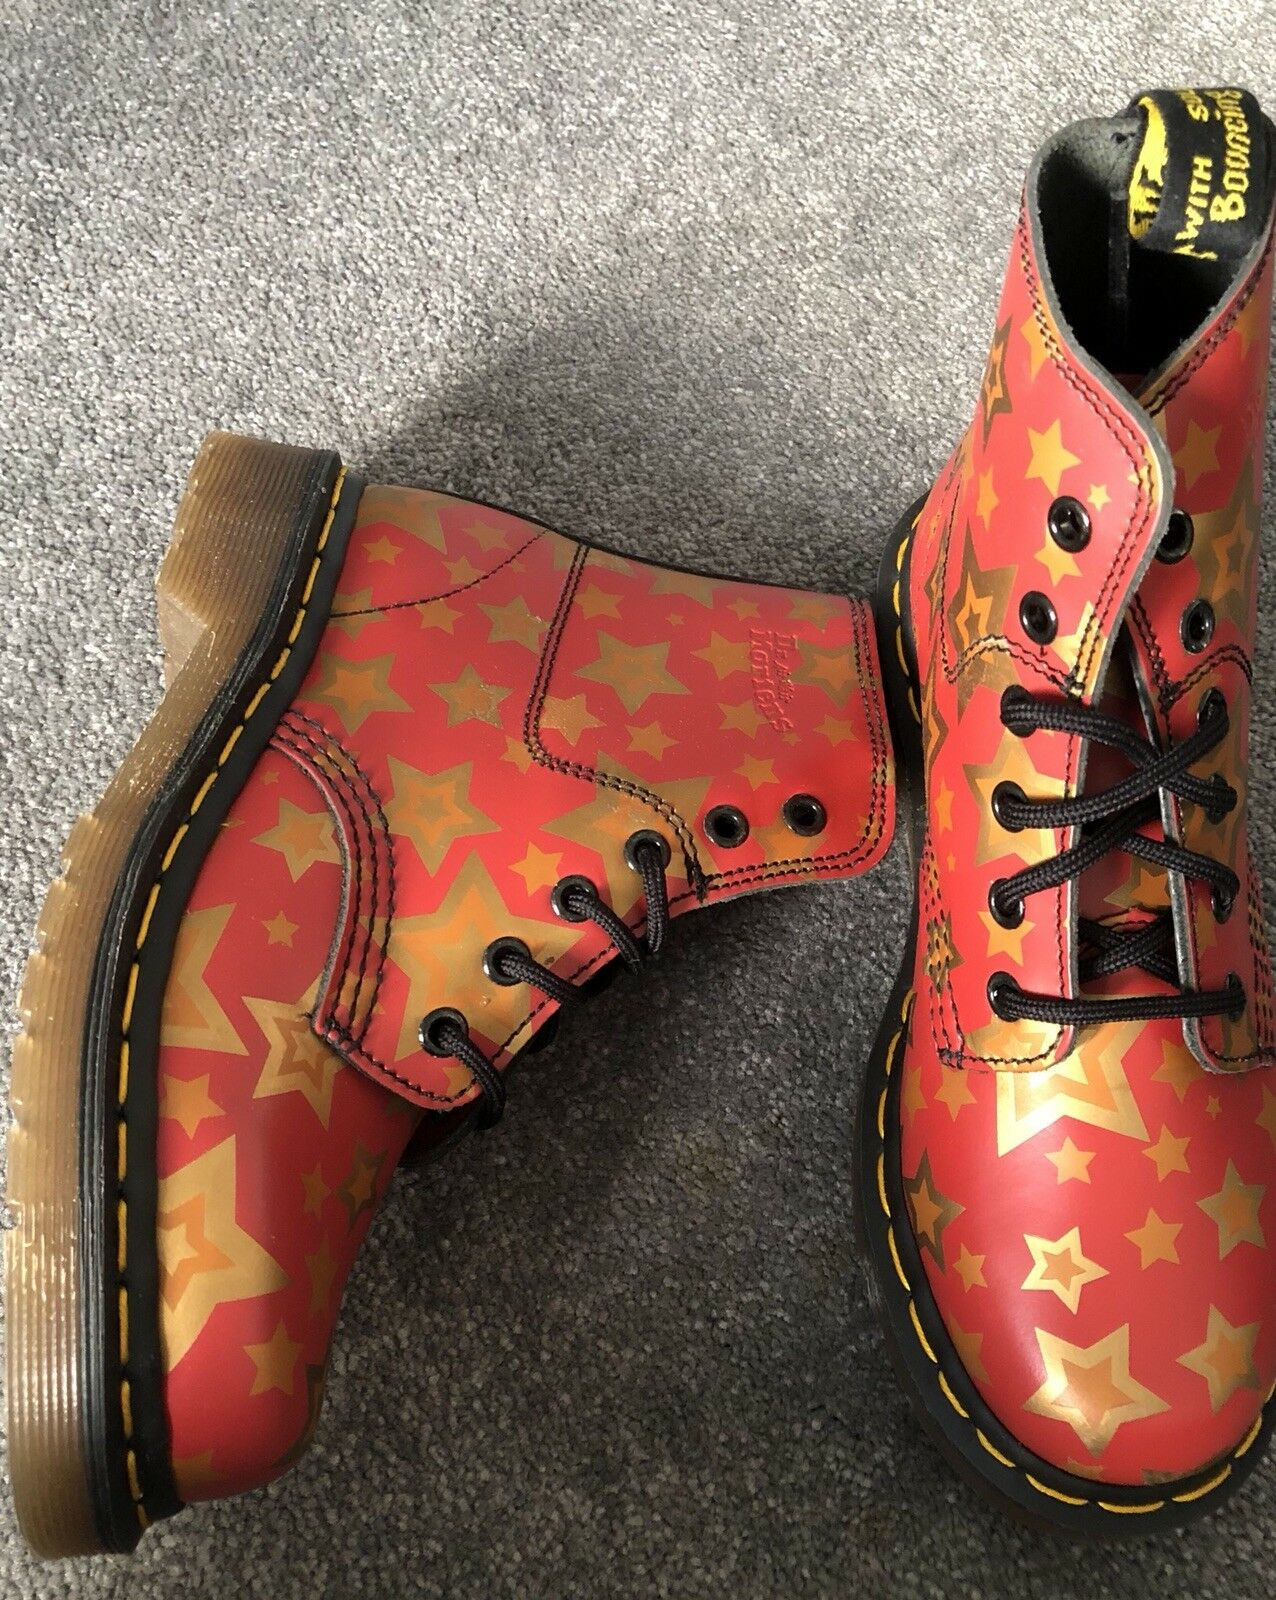 Ladies Dr Marten Red Star Leather Boots 8175 New Without Box Size 3 36